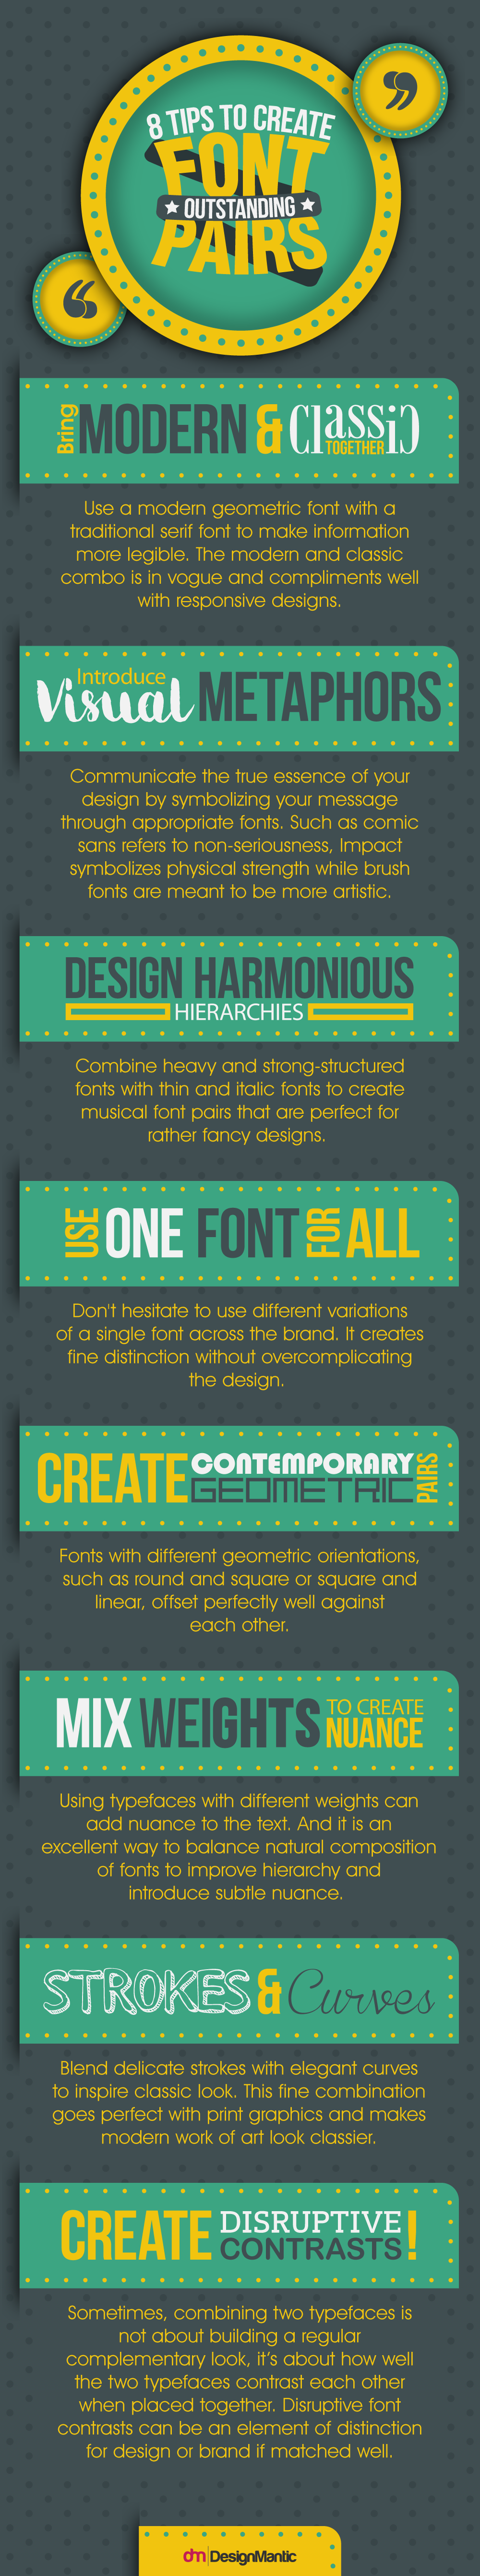 Create Outstanding Font Pairs